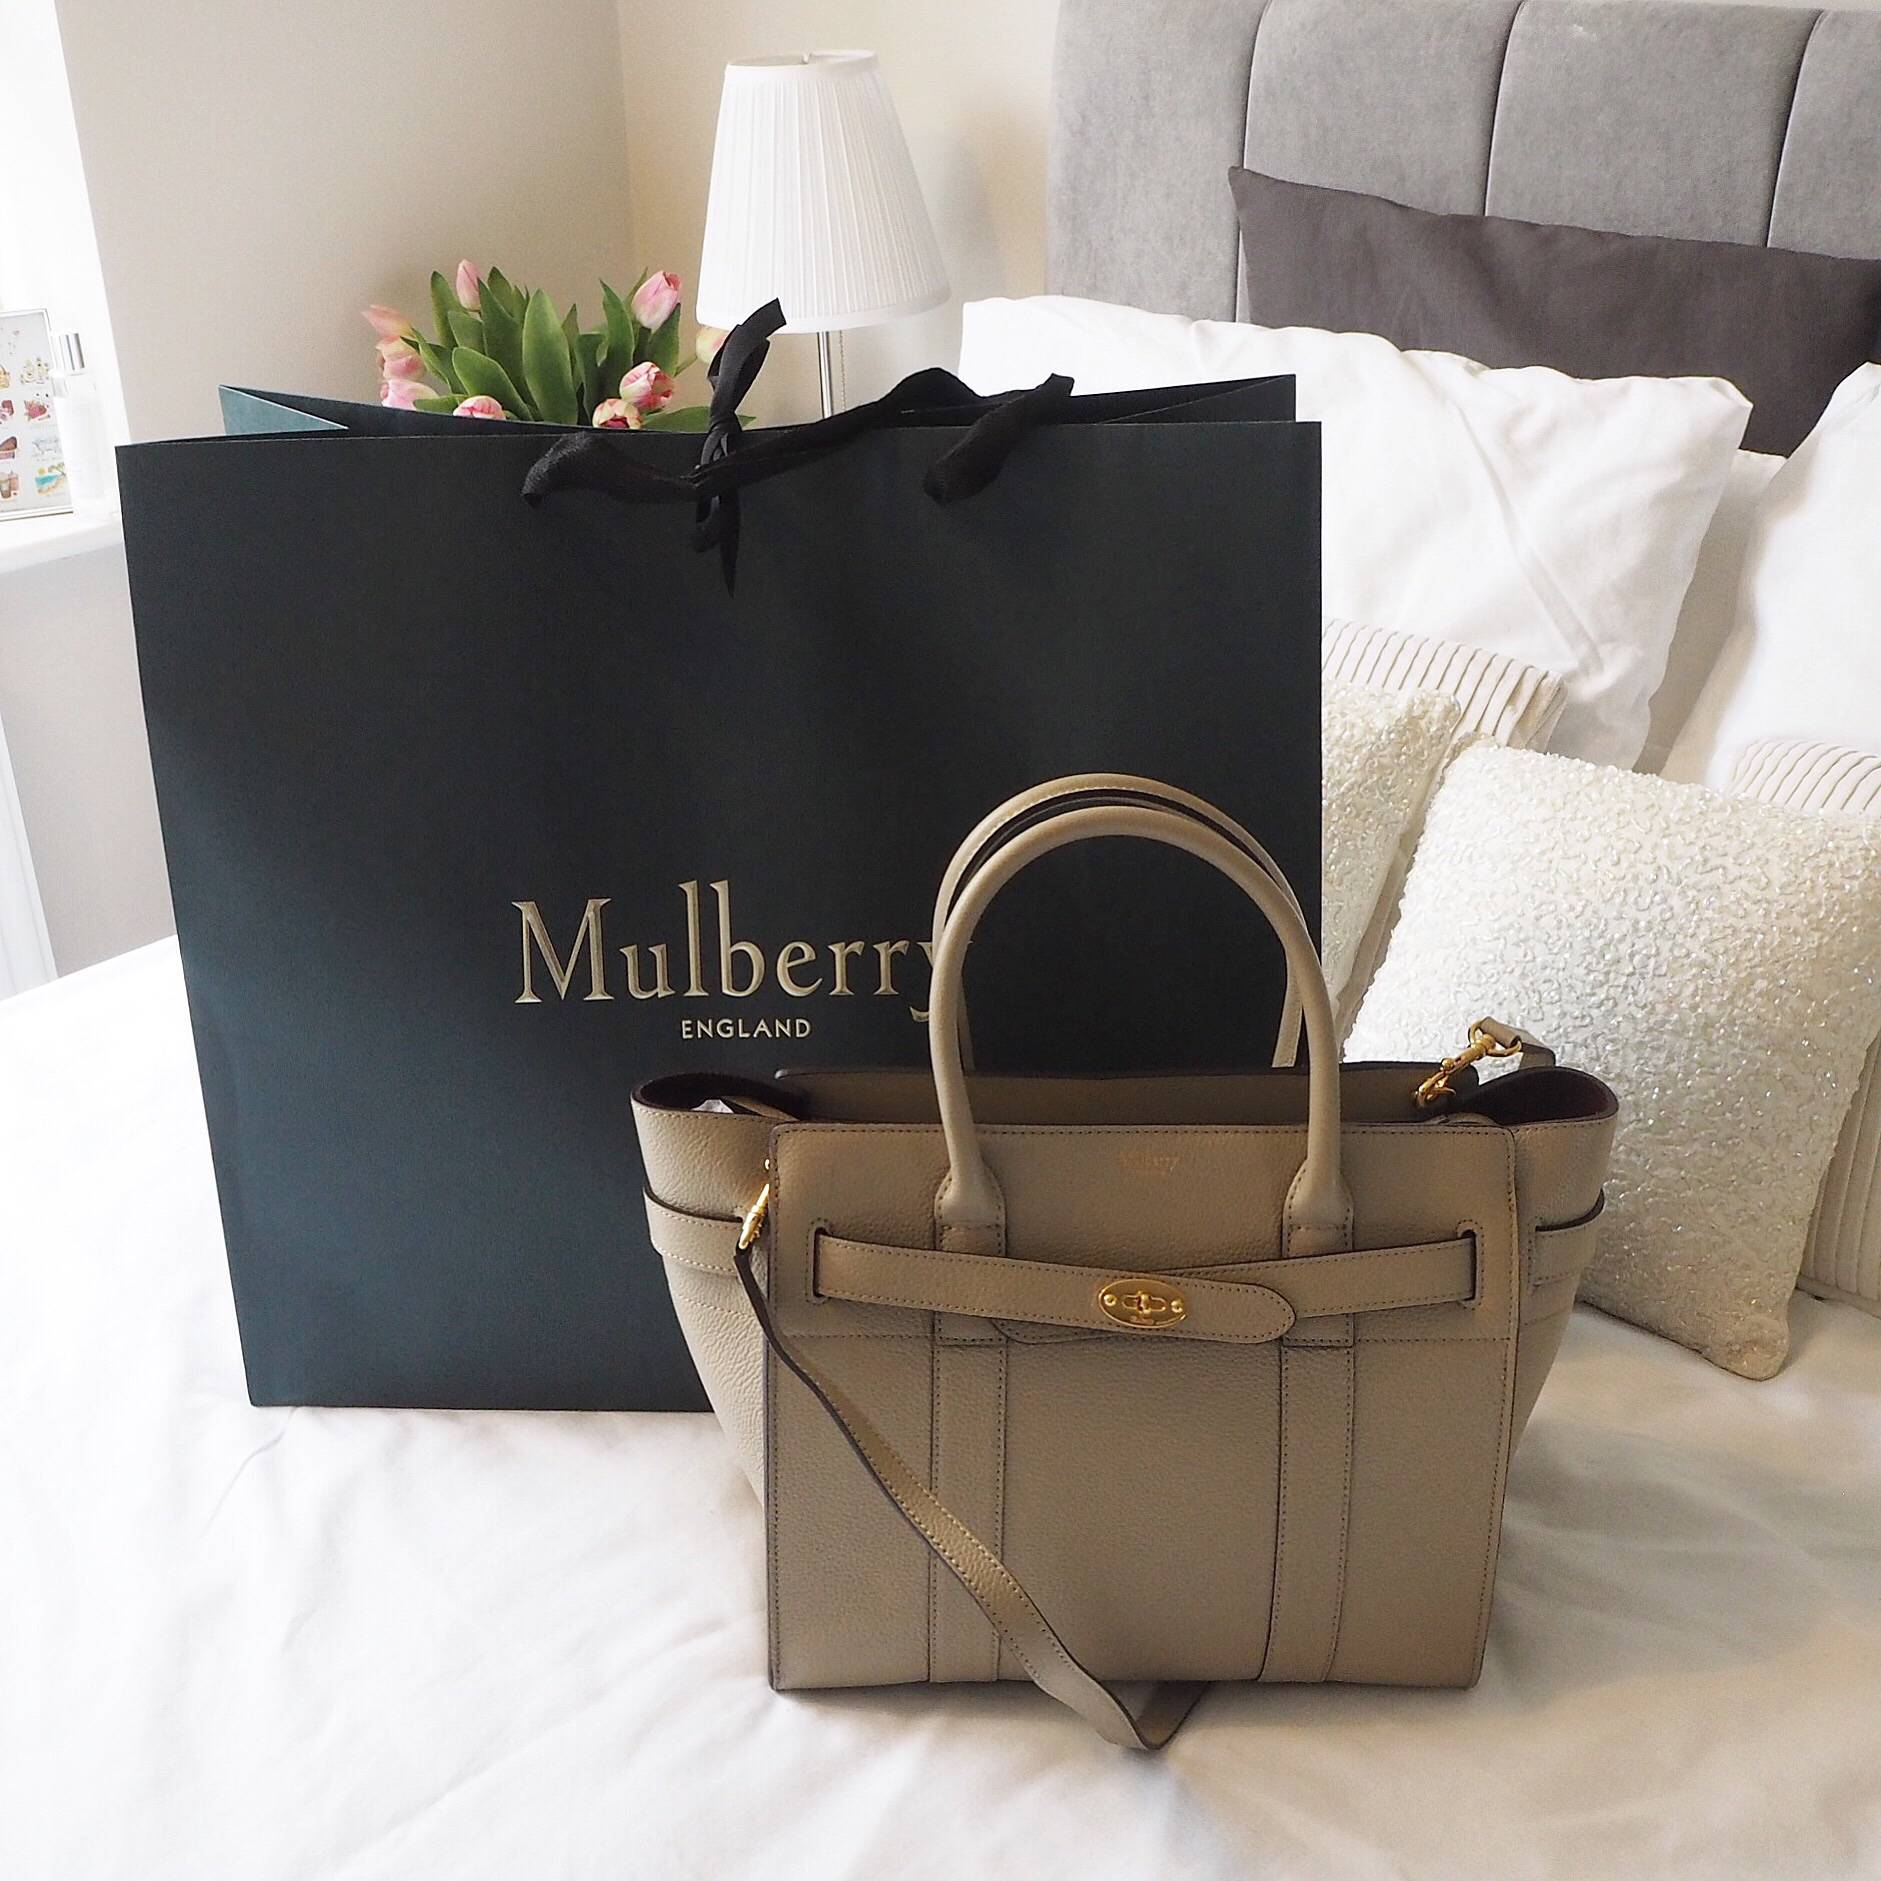 56ea5511c4c2 The Mulberry Zipped Bayswater - Stephanie Jayne - Beauty